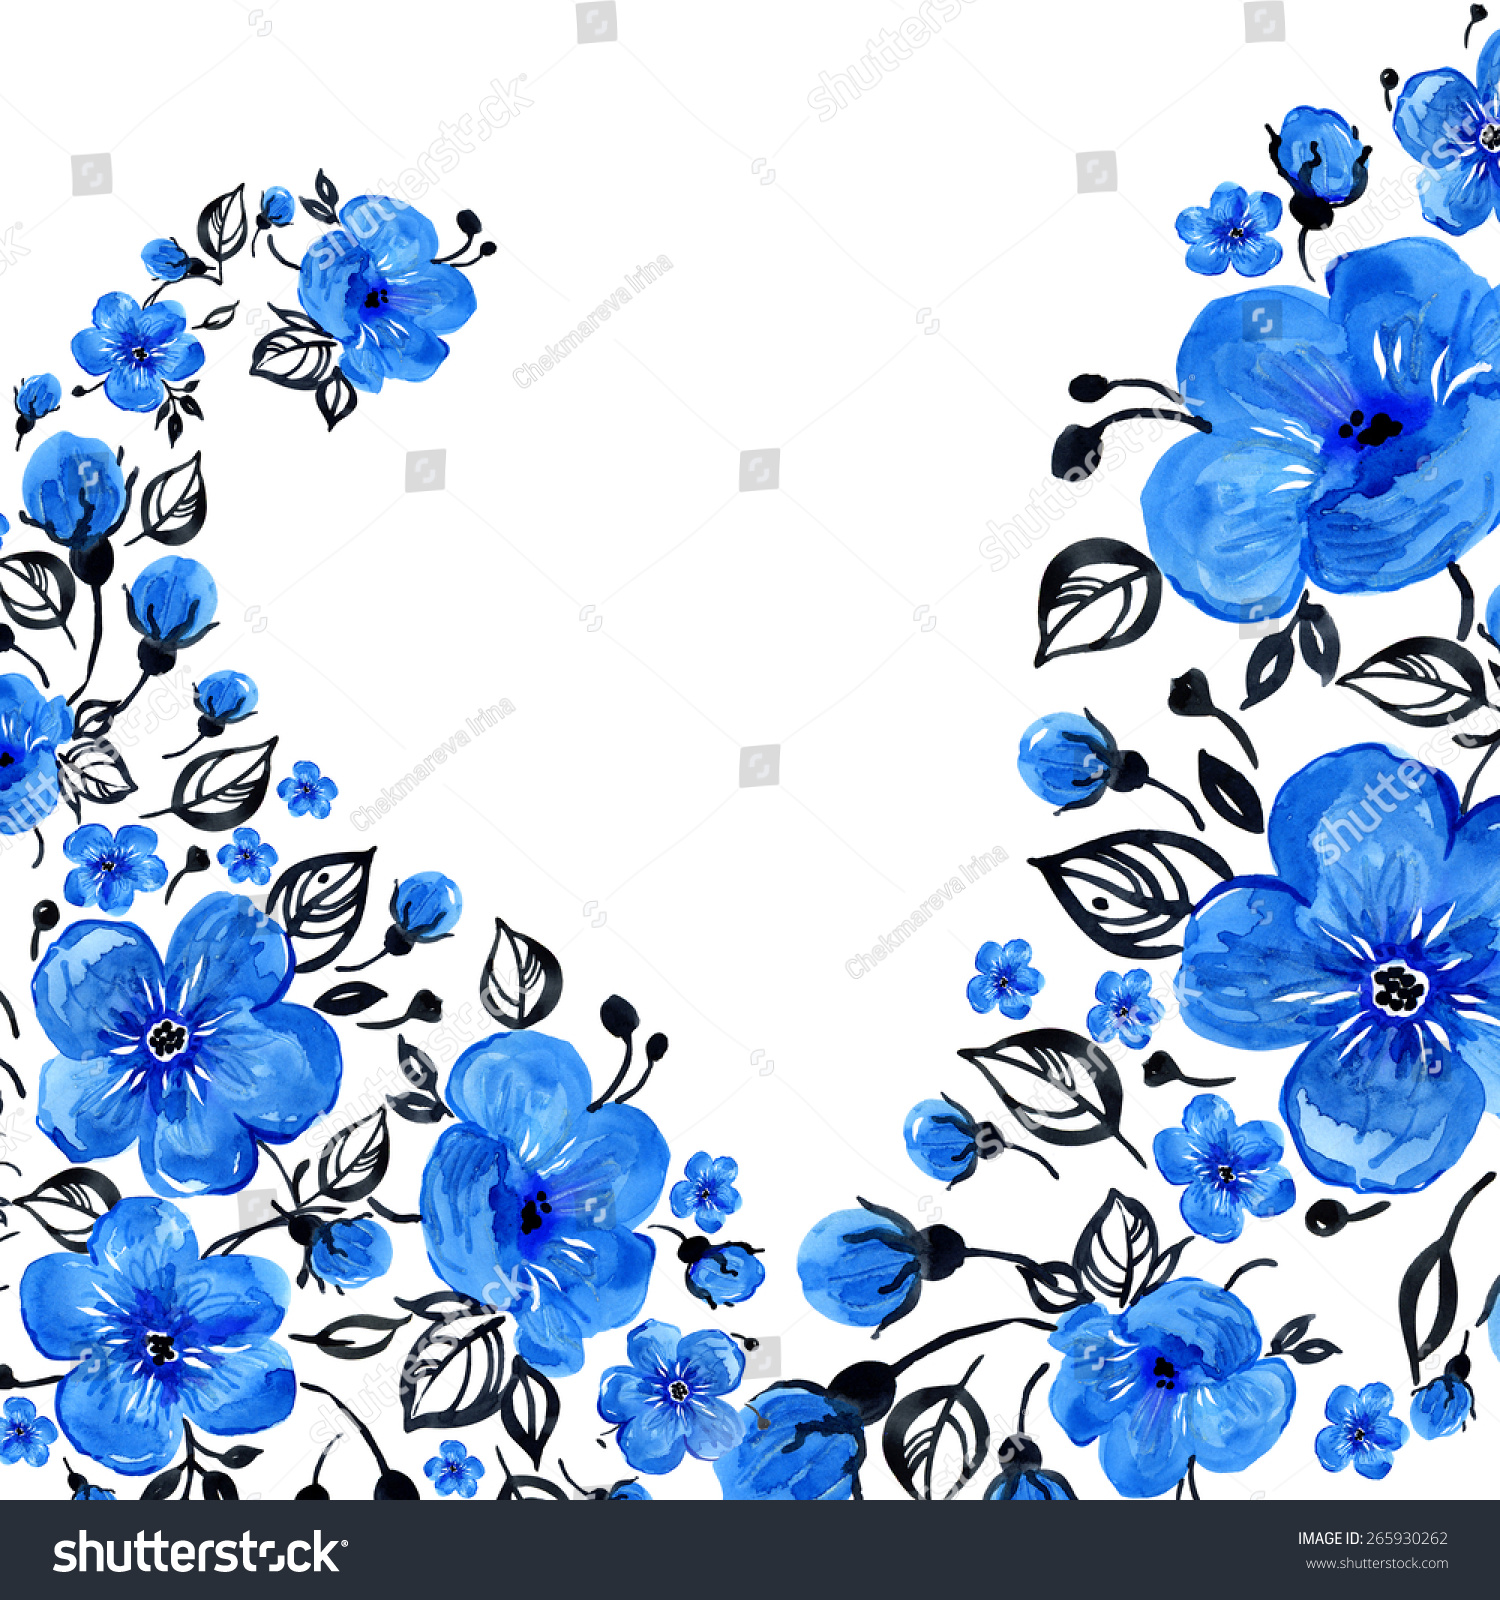 Watercolor Floral Background Wonderful Blue Flowers Stock